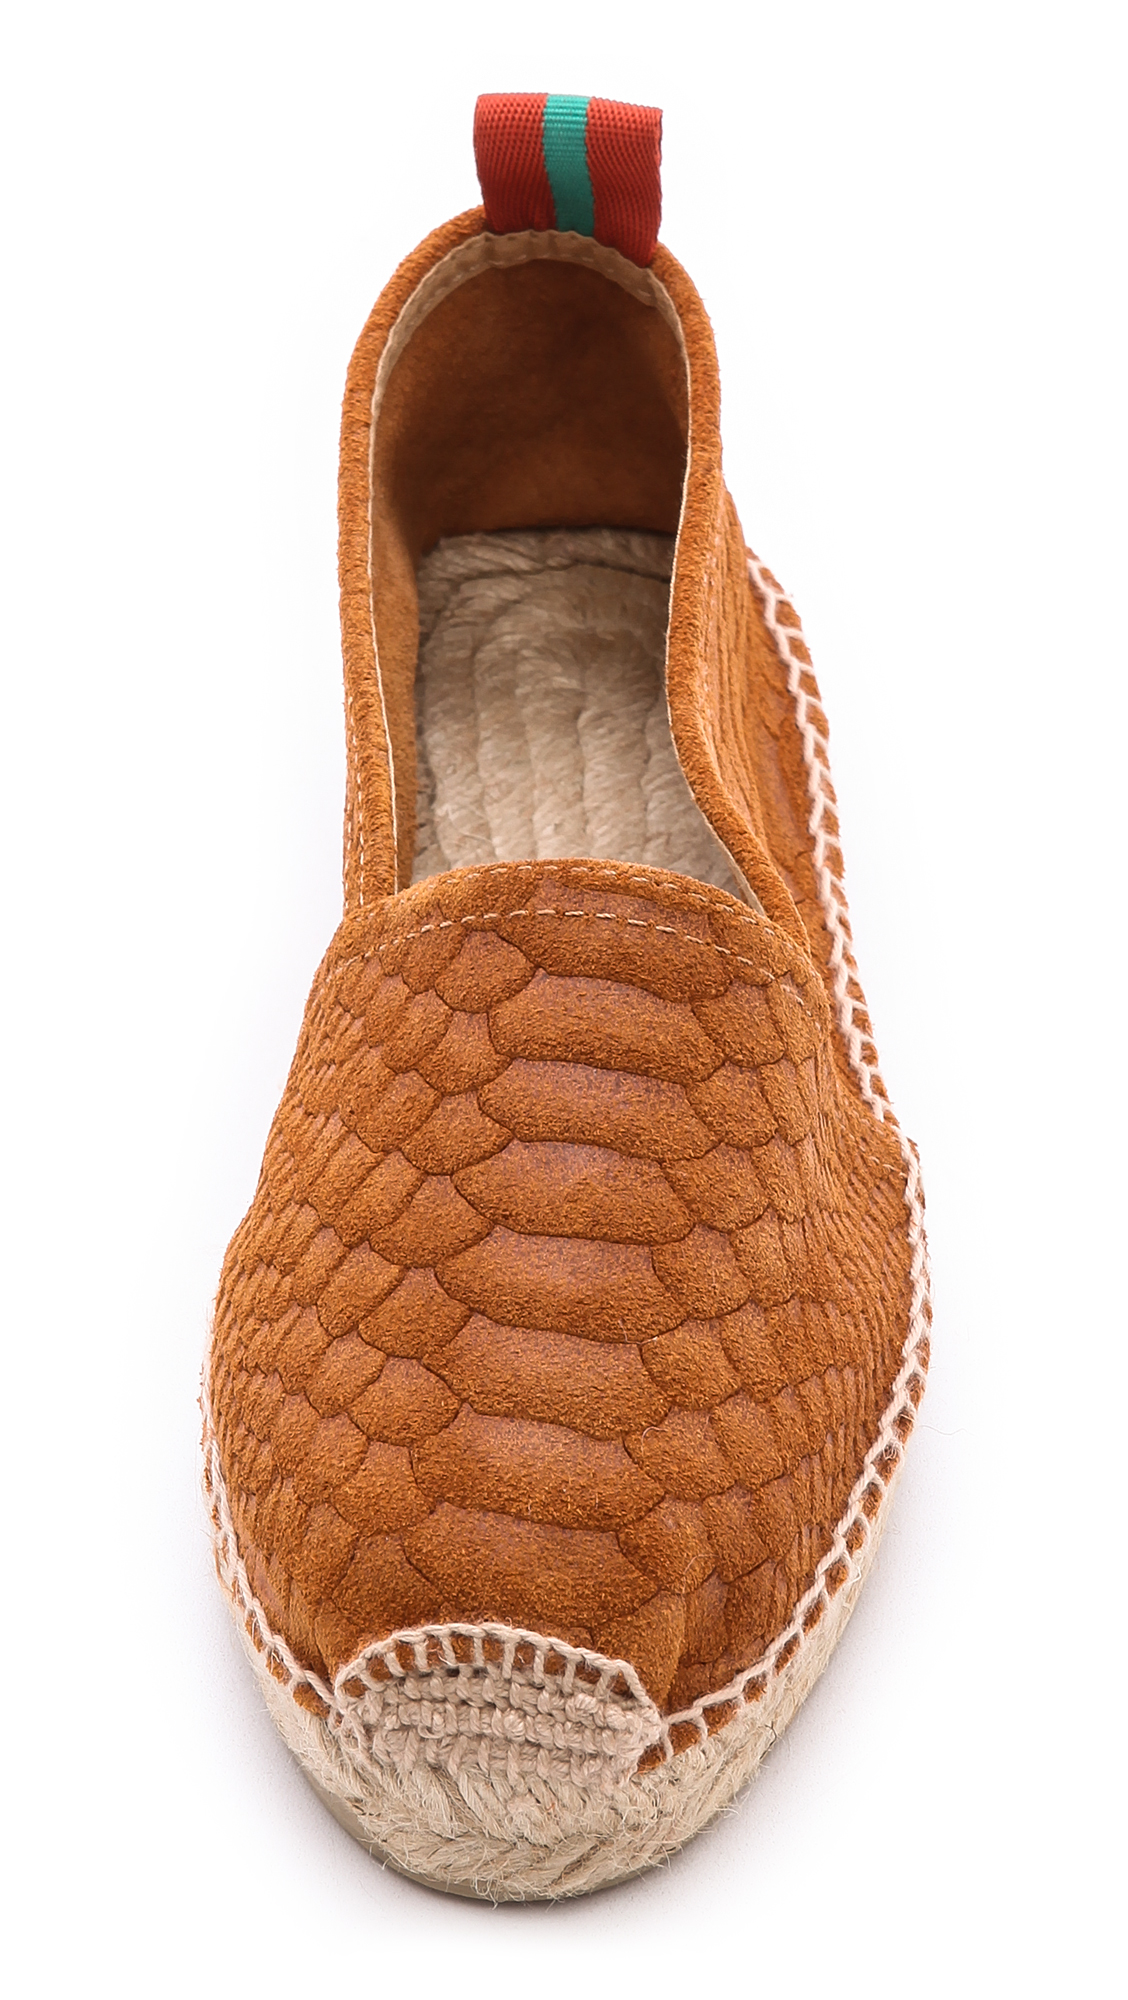 Penelope Chilvers Espadrilles Penelope Chilvers Sueded Snake